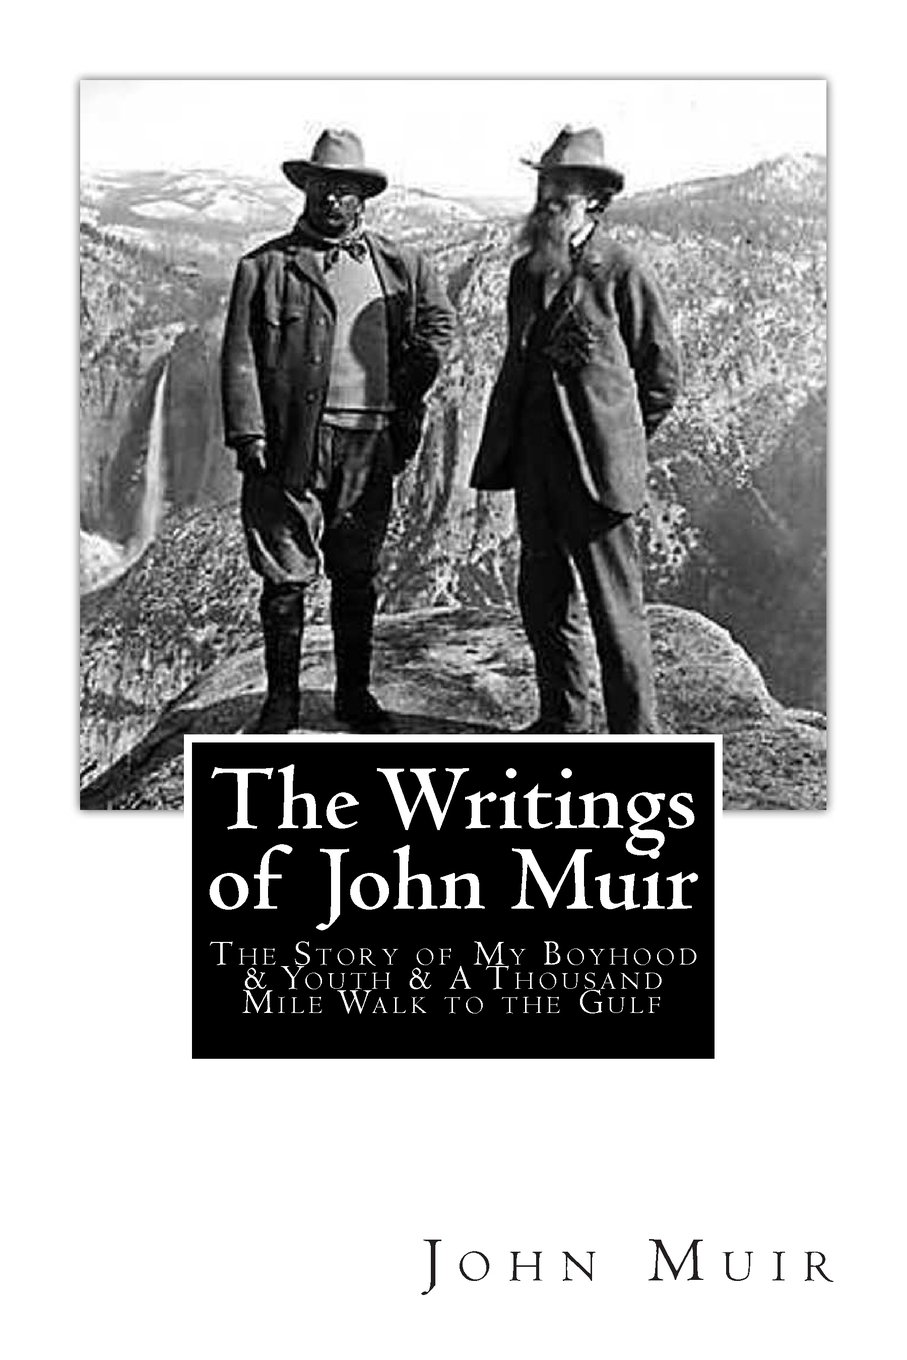 Download The Writings of John Muir: The Story of My Boyhood and Youth & A Thousand Mile Walk to the Gulf ebook